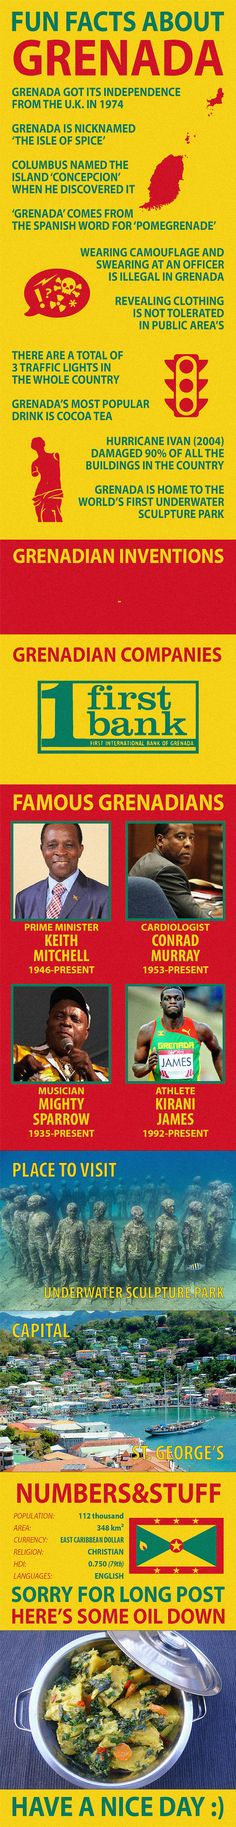 Fun Facts about Grenada